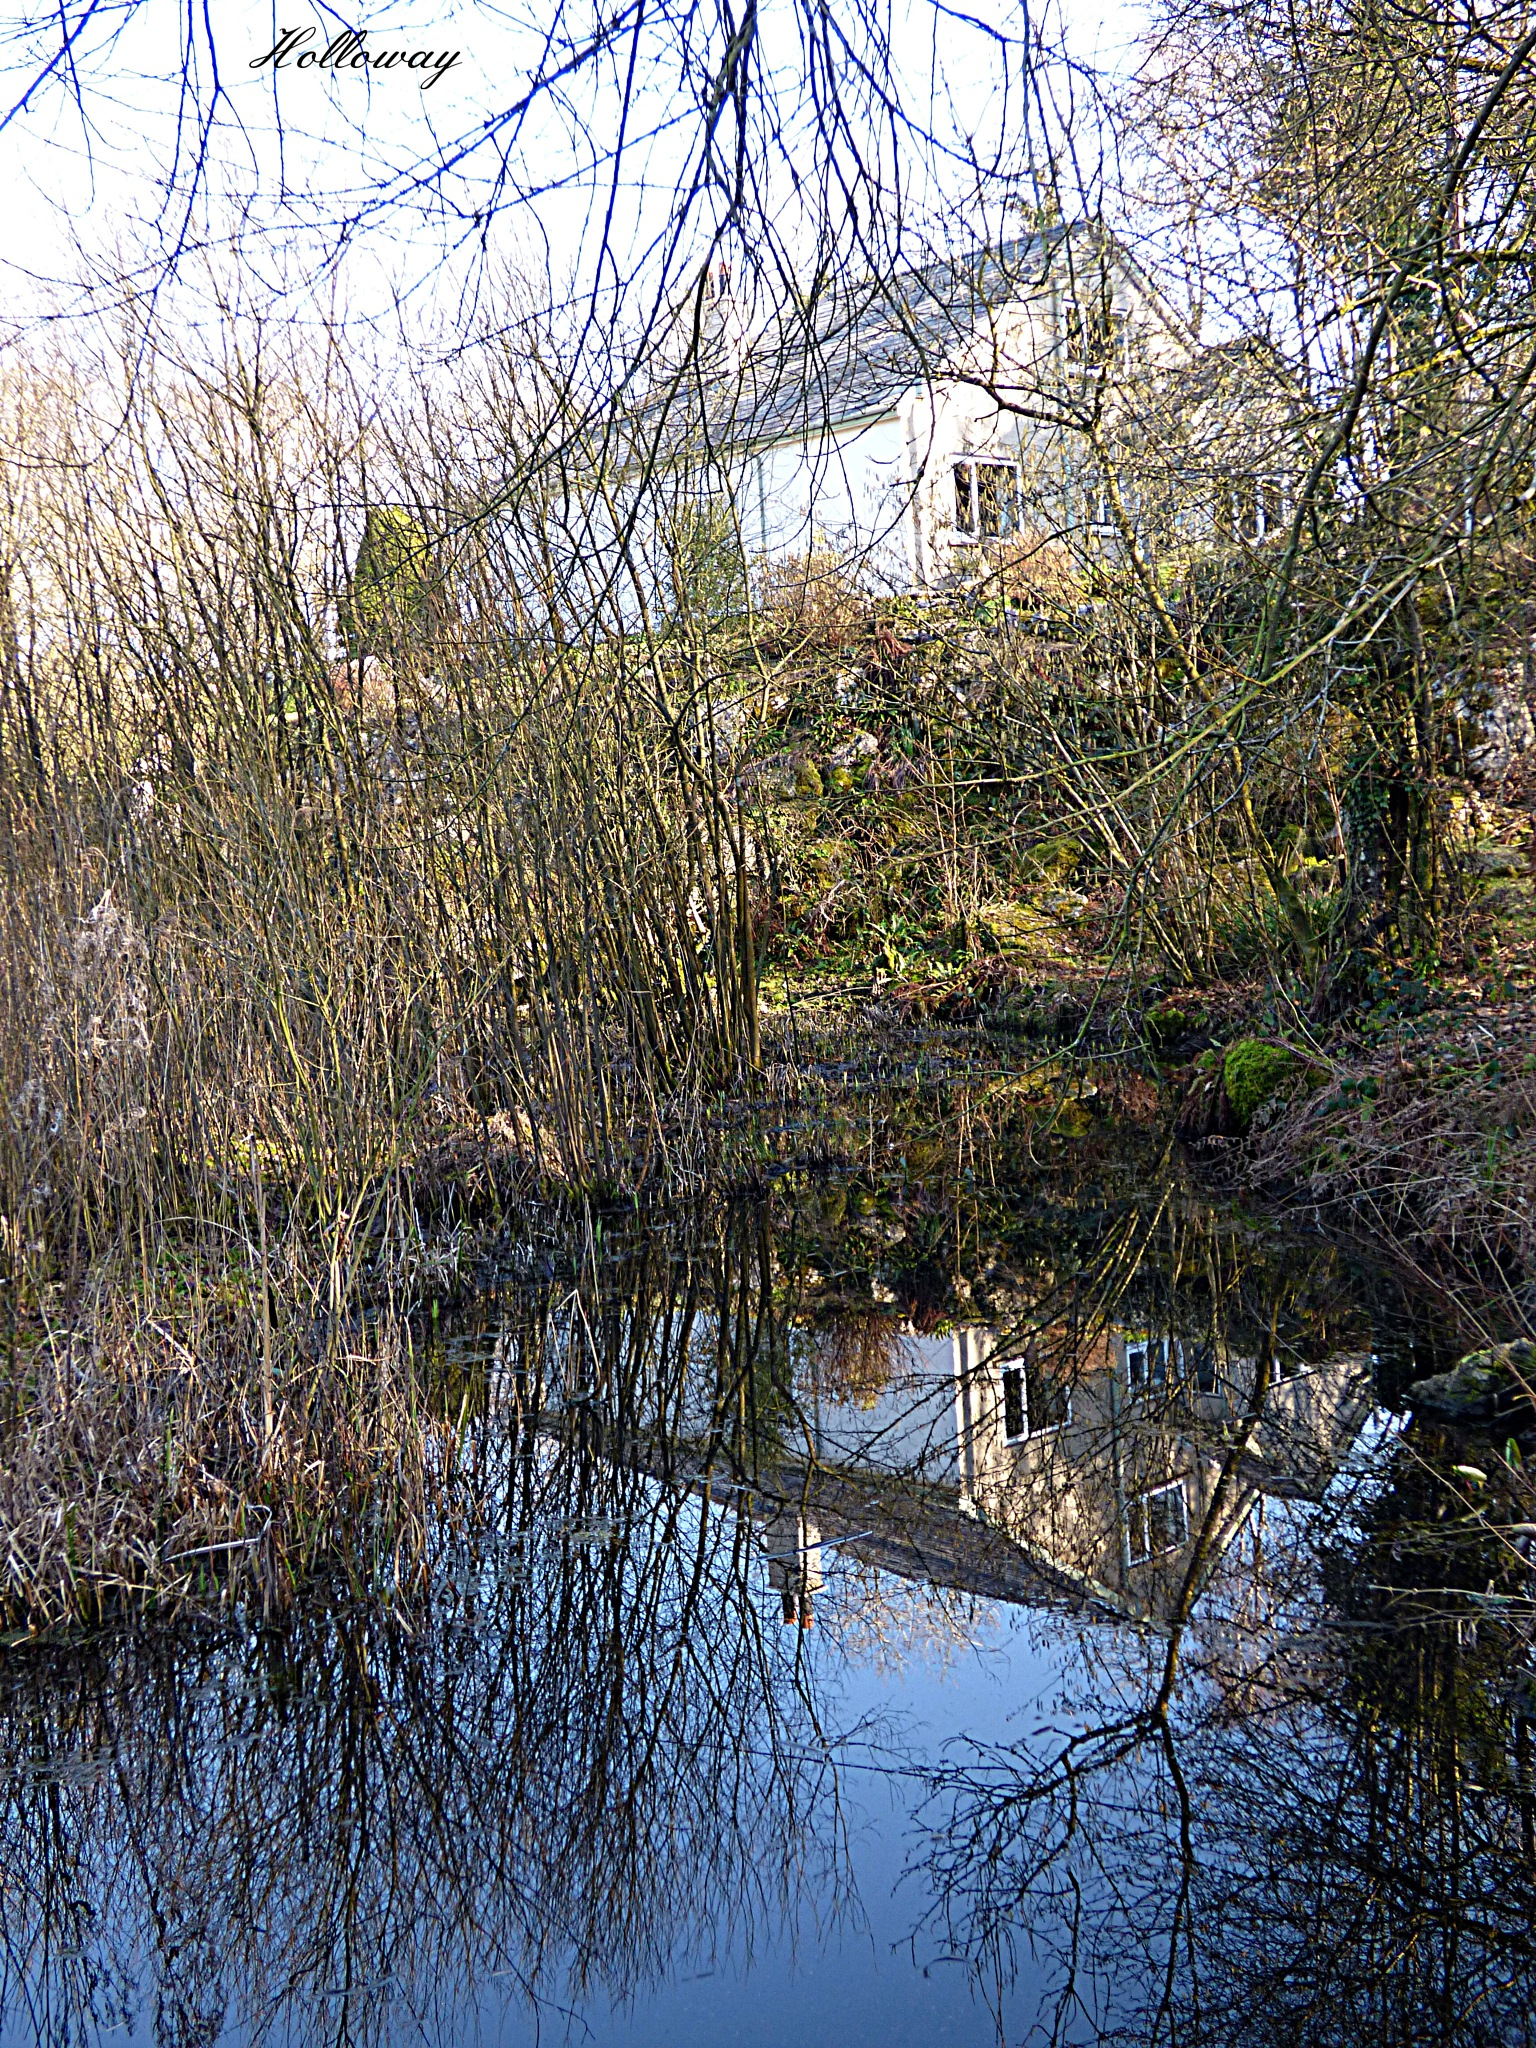 Bank Well reflections by John Holloway